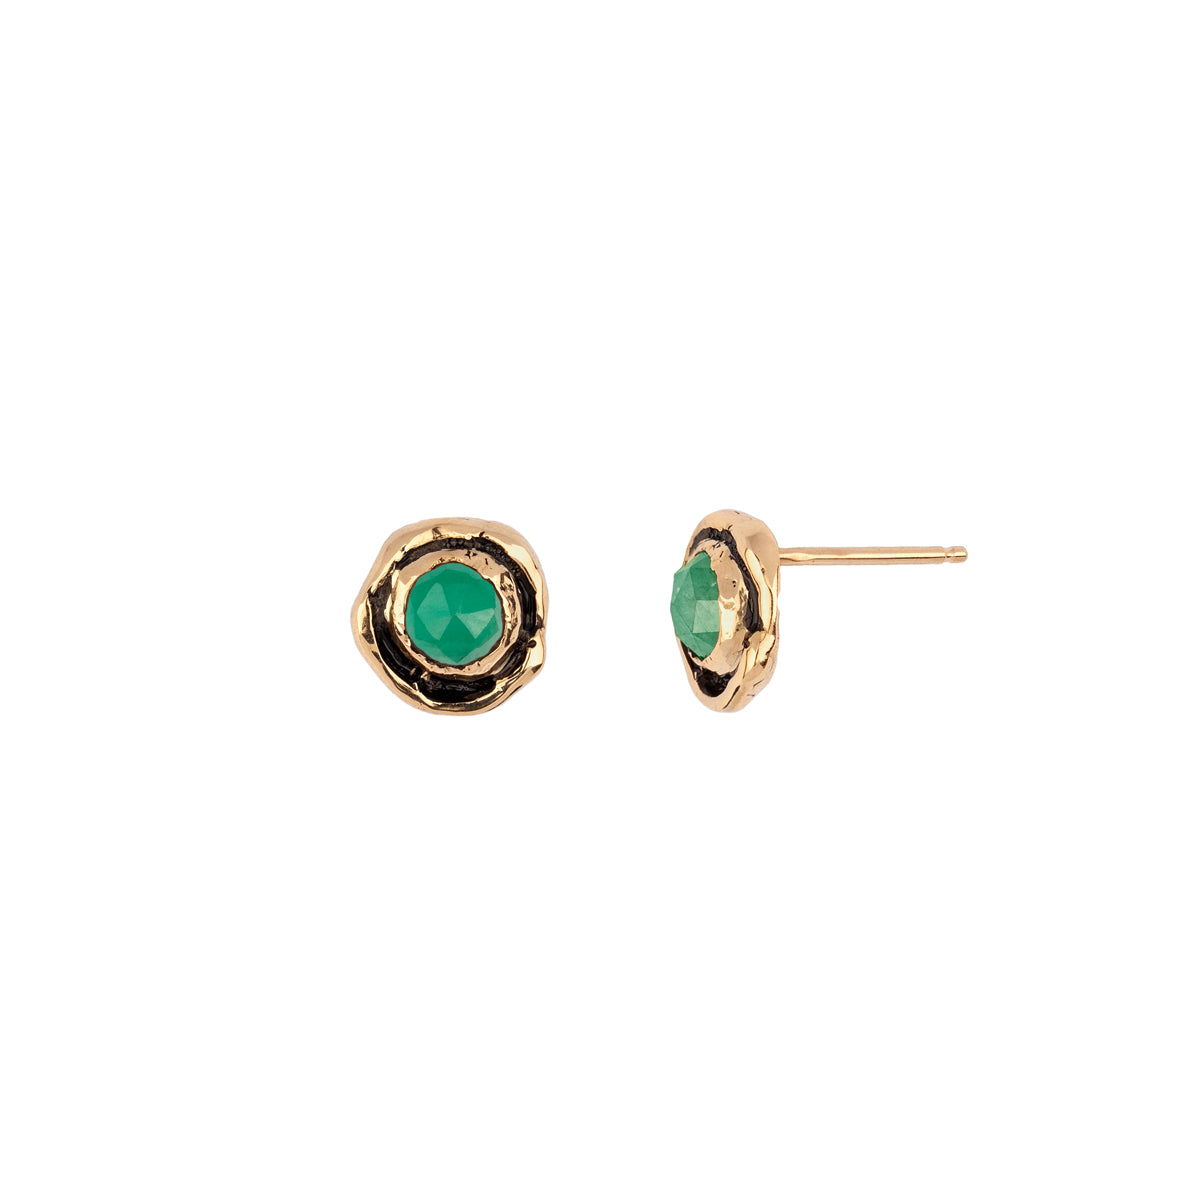 Small Emerald Faceted Stone 14K Gold Stud